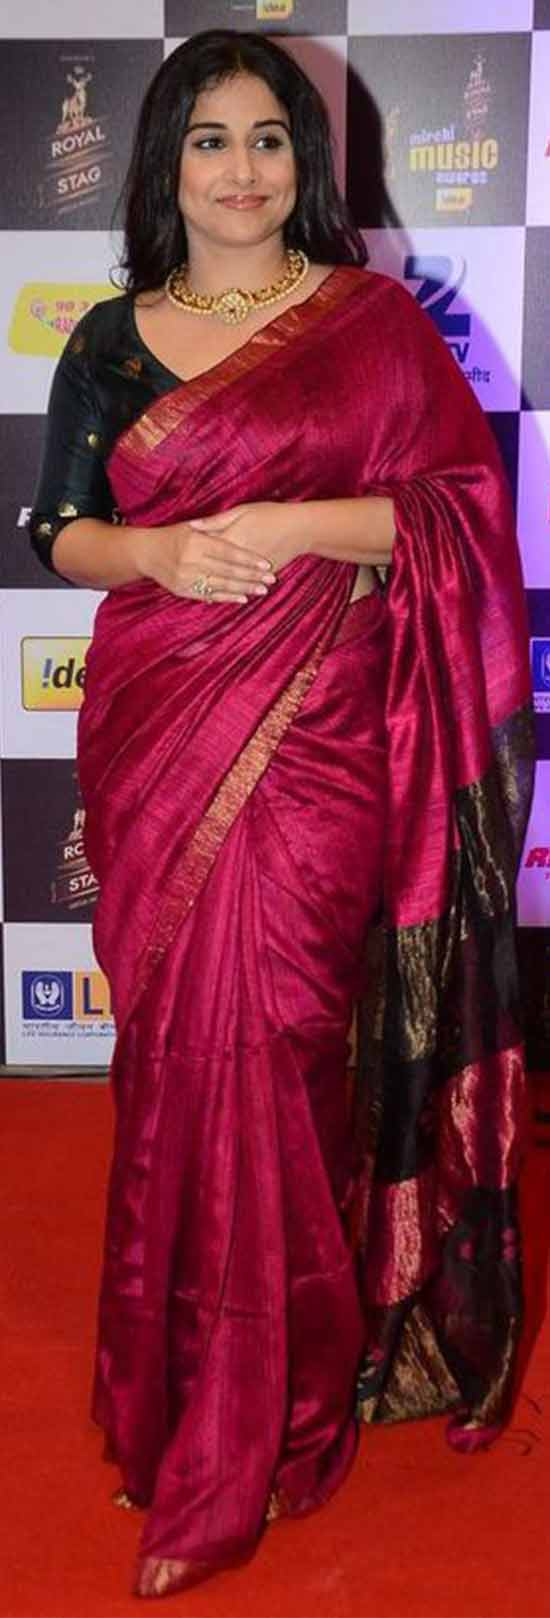 Vidya-Balan-Latest-Hot-Spicy-Traditional-Pink-Saree